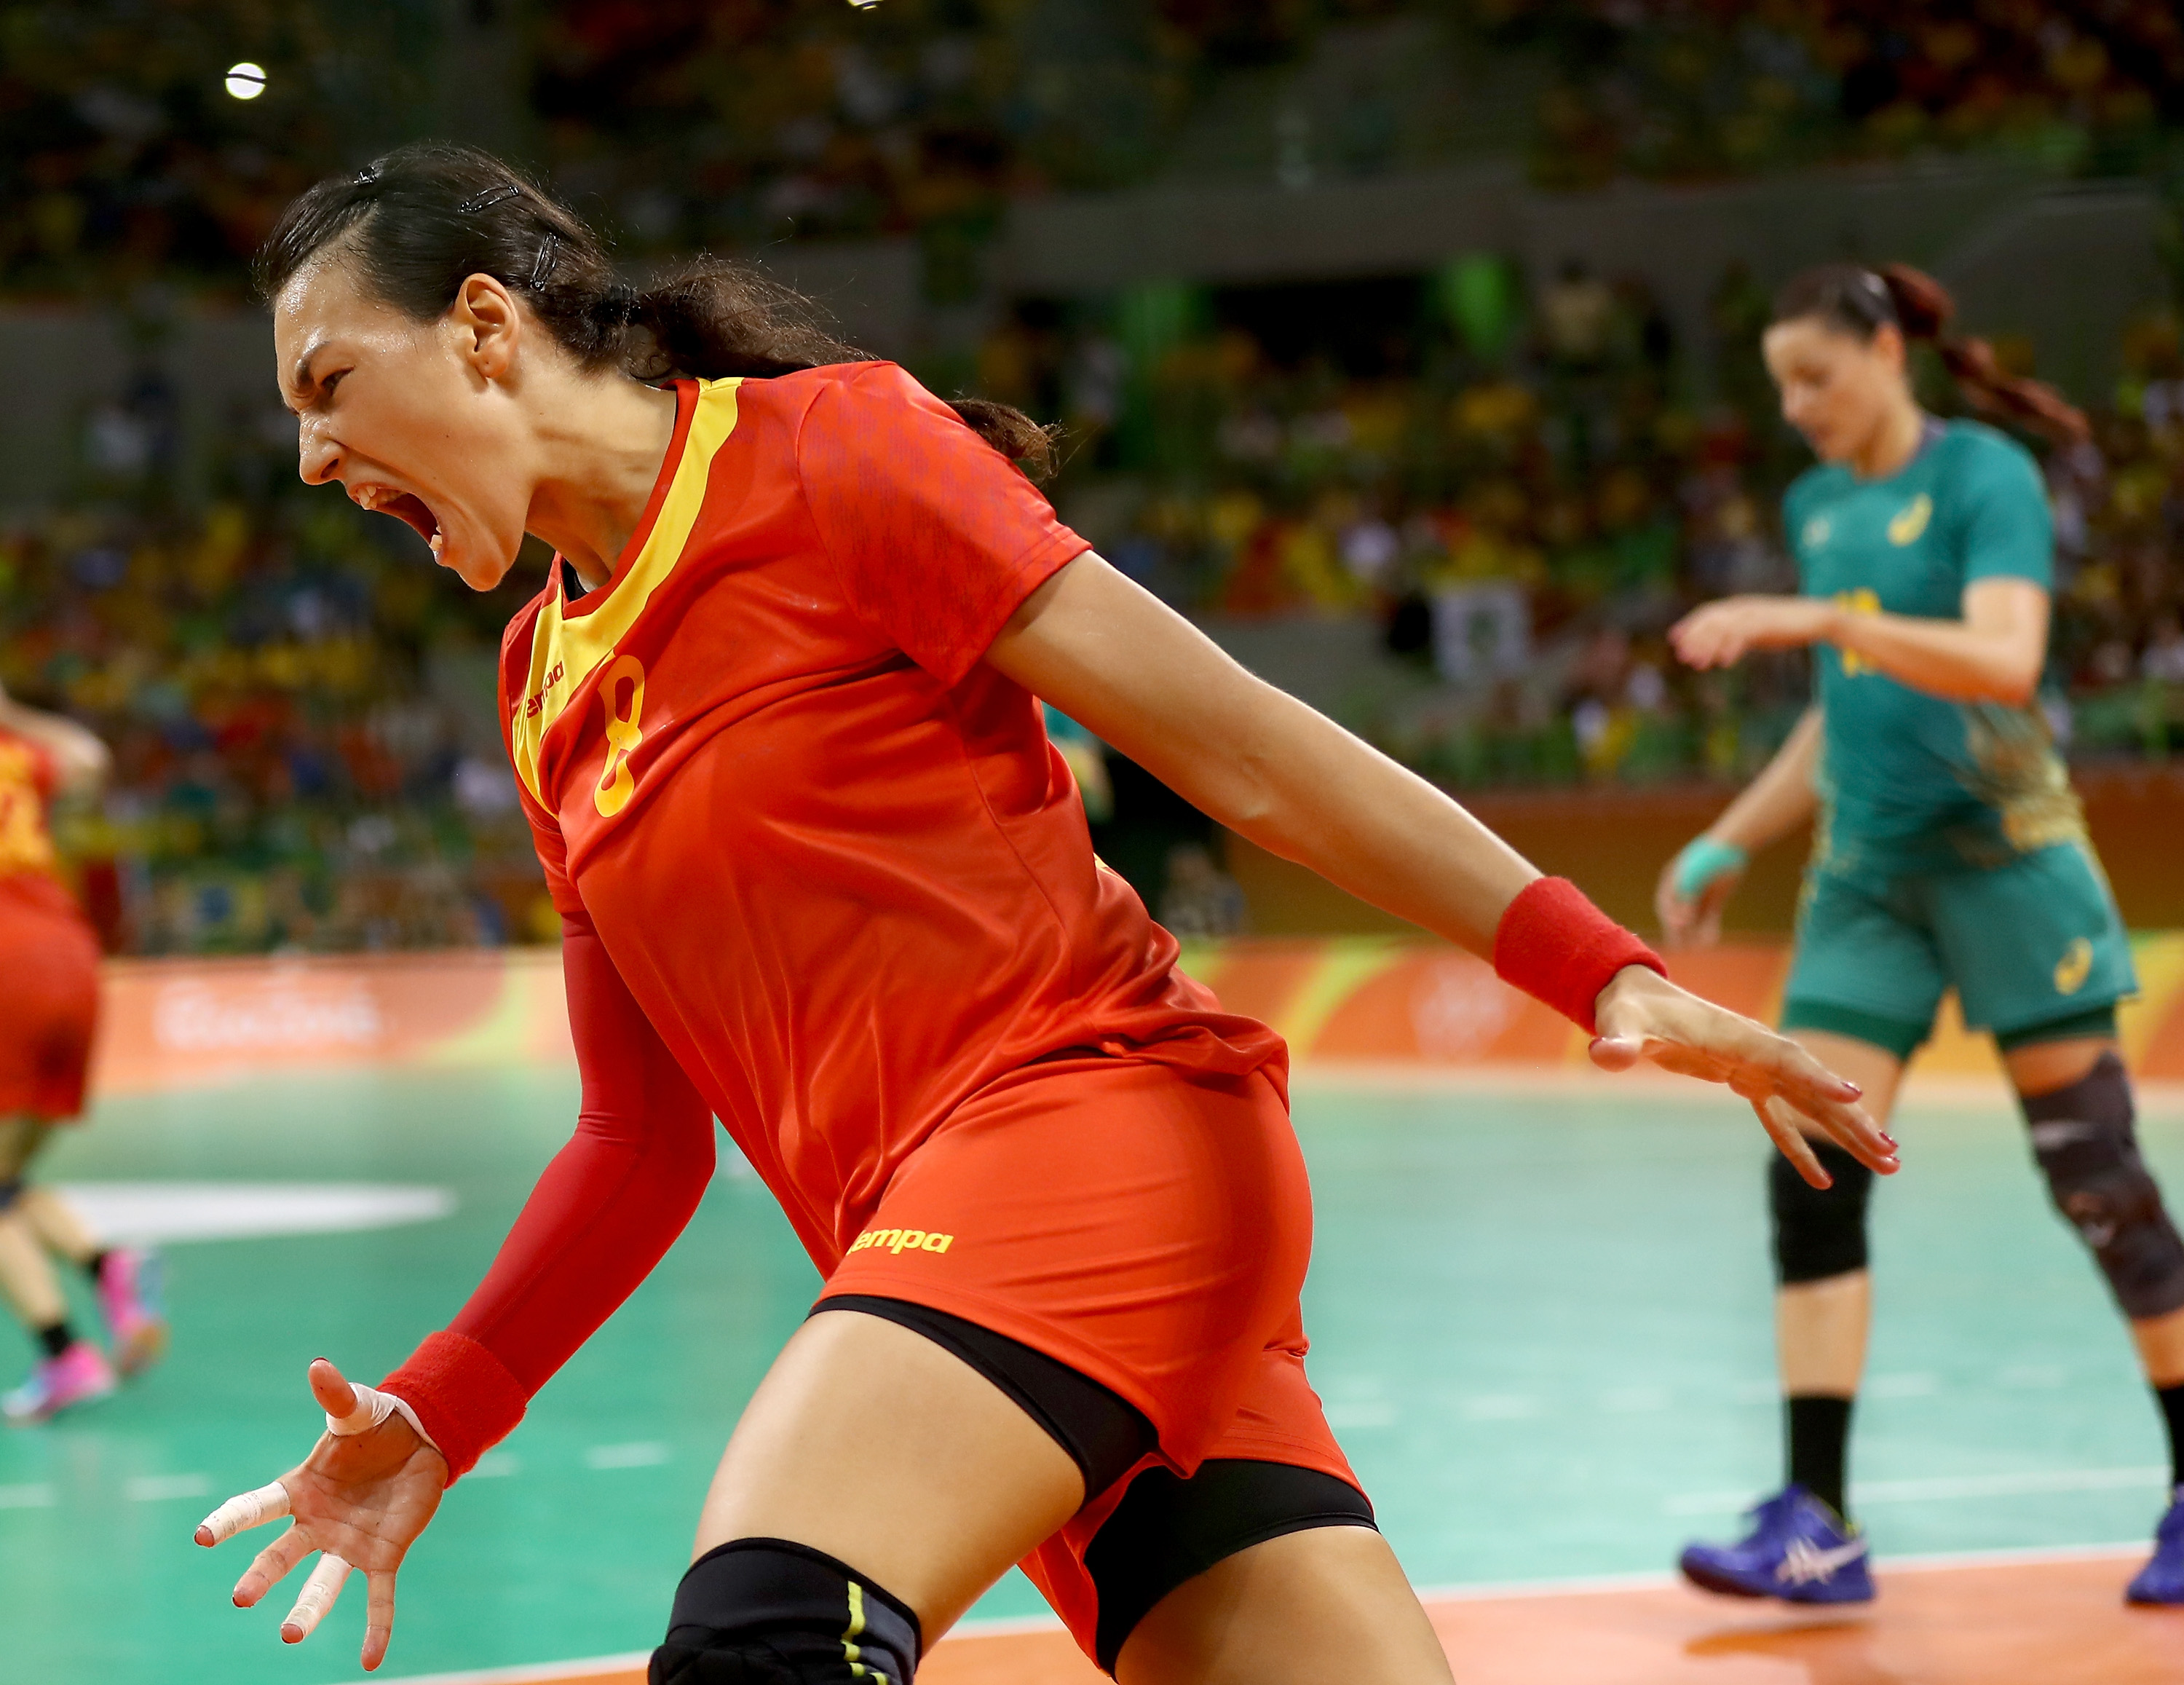 RIO DE JANEIRO, BRAZIL - AUGUST 08: Cristina Neagu #8 of Romania celebrates her goal in the first half against Brazil on Day 3 of the Rio 2016 Olympic Games at the Future Arena on August 8, 2016 in Rio de Janeiro, Bra (Photo by Elsa/Getty Images)